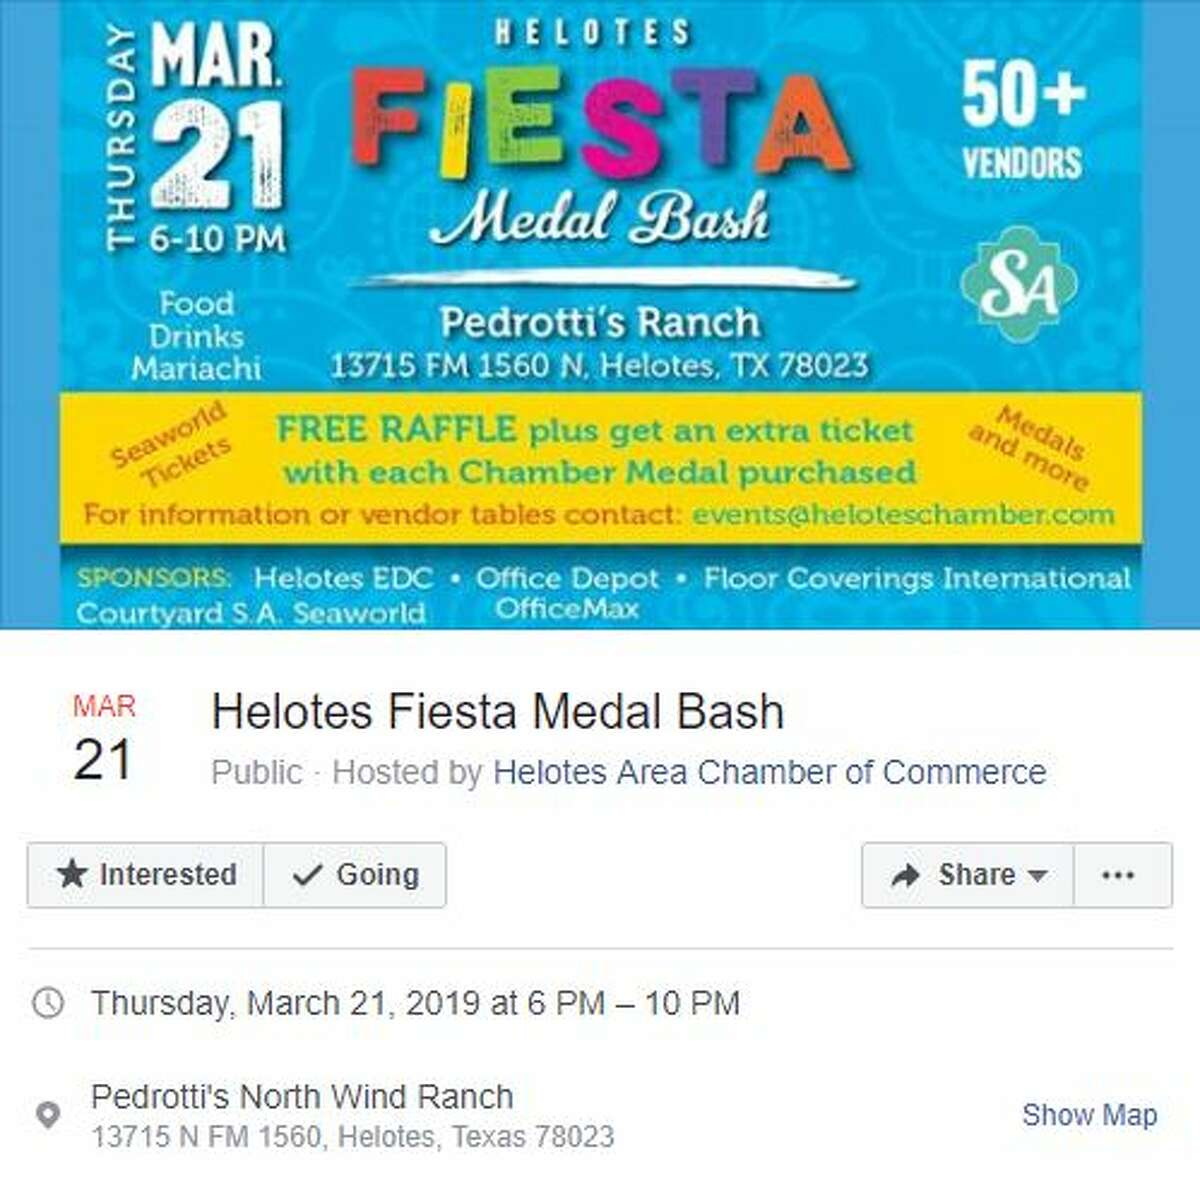 Helotes Fiesta Medal Bash Thursday, March 21, 2019, 6-10 p.m. Pedrotti's North Wind Ranch, 13715 N. FM 1560, Helotes, TX, 78023